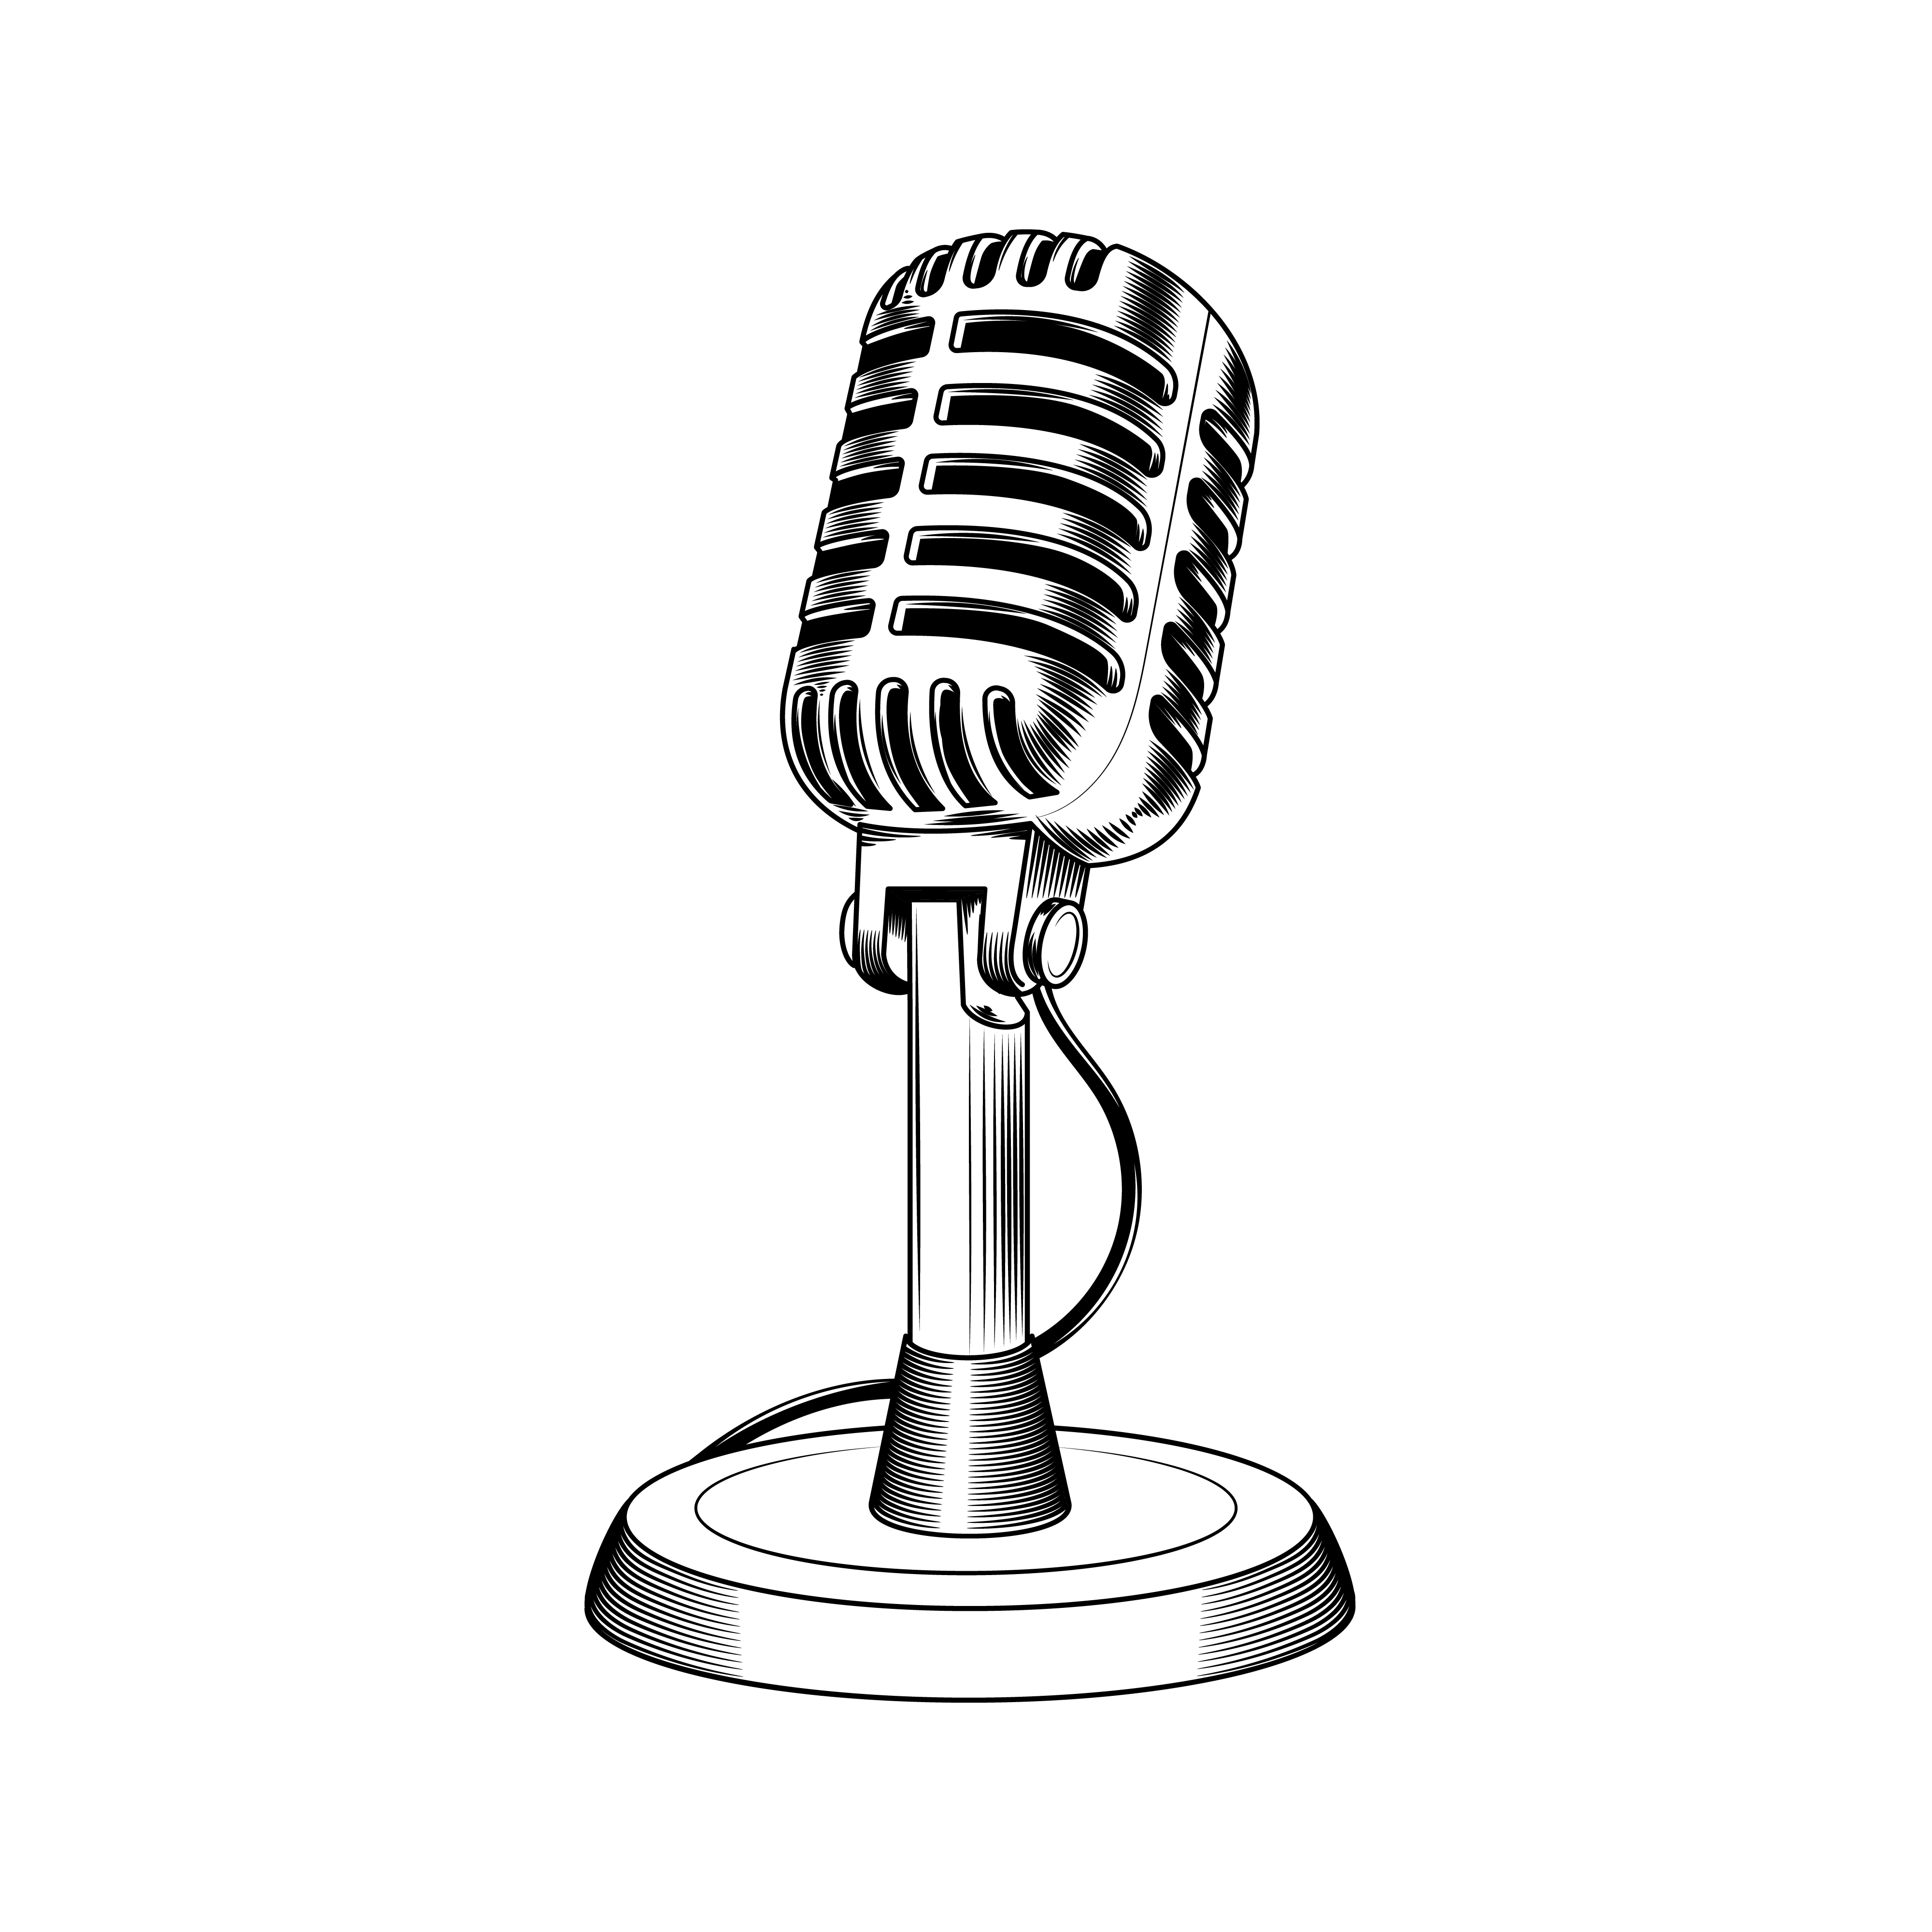 Old microphone made in engraving style Vector - Download ...